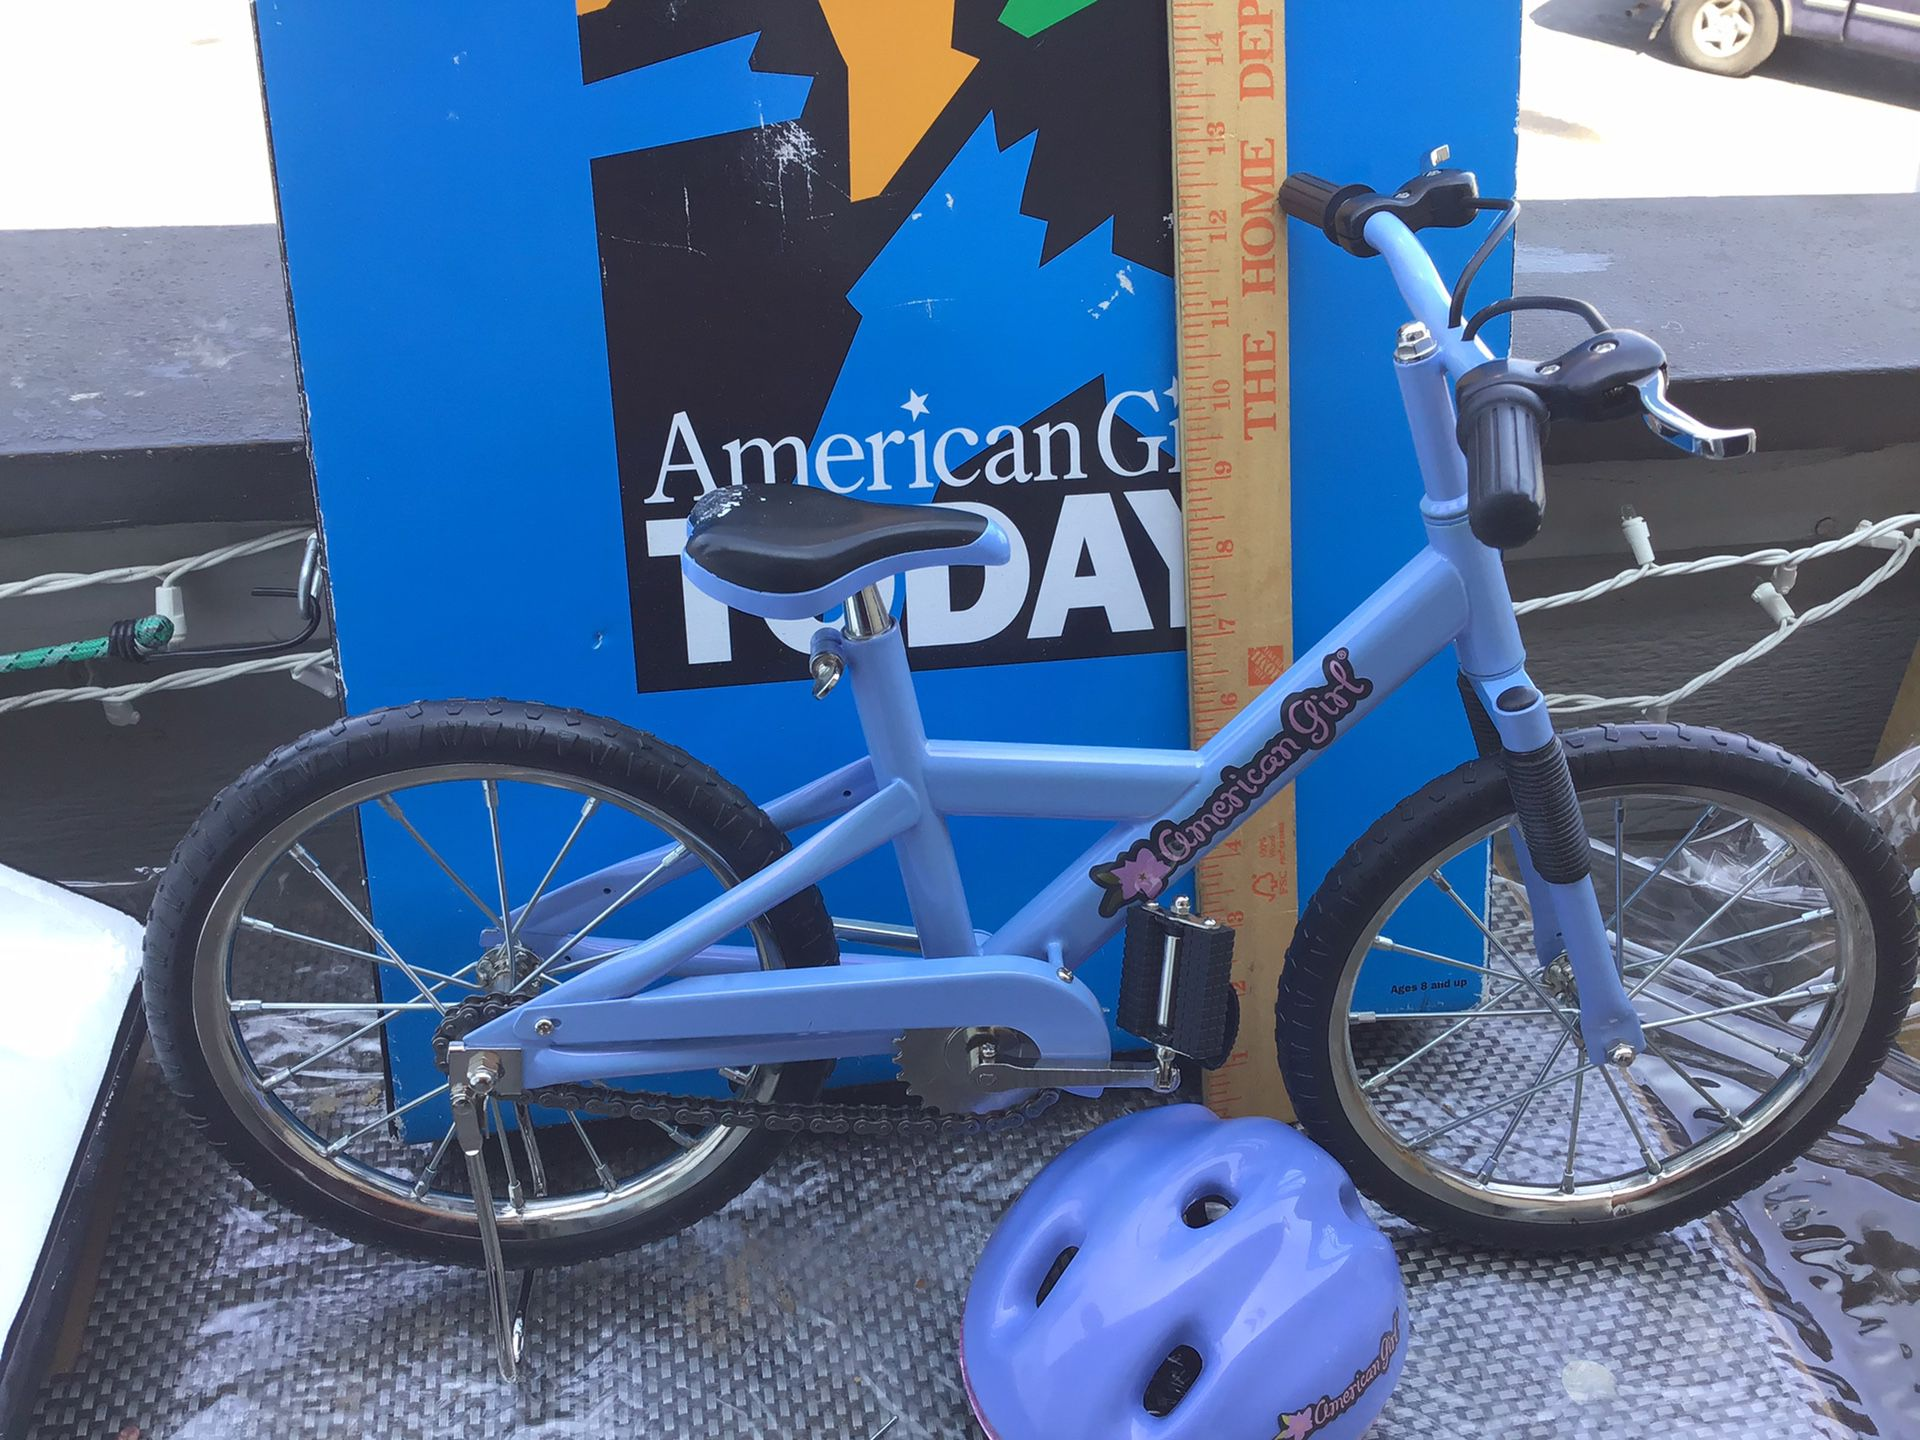 American Doll bicycle and helmet